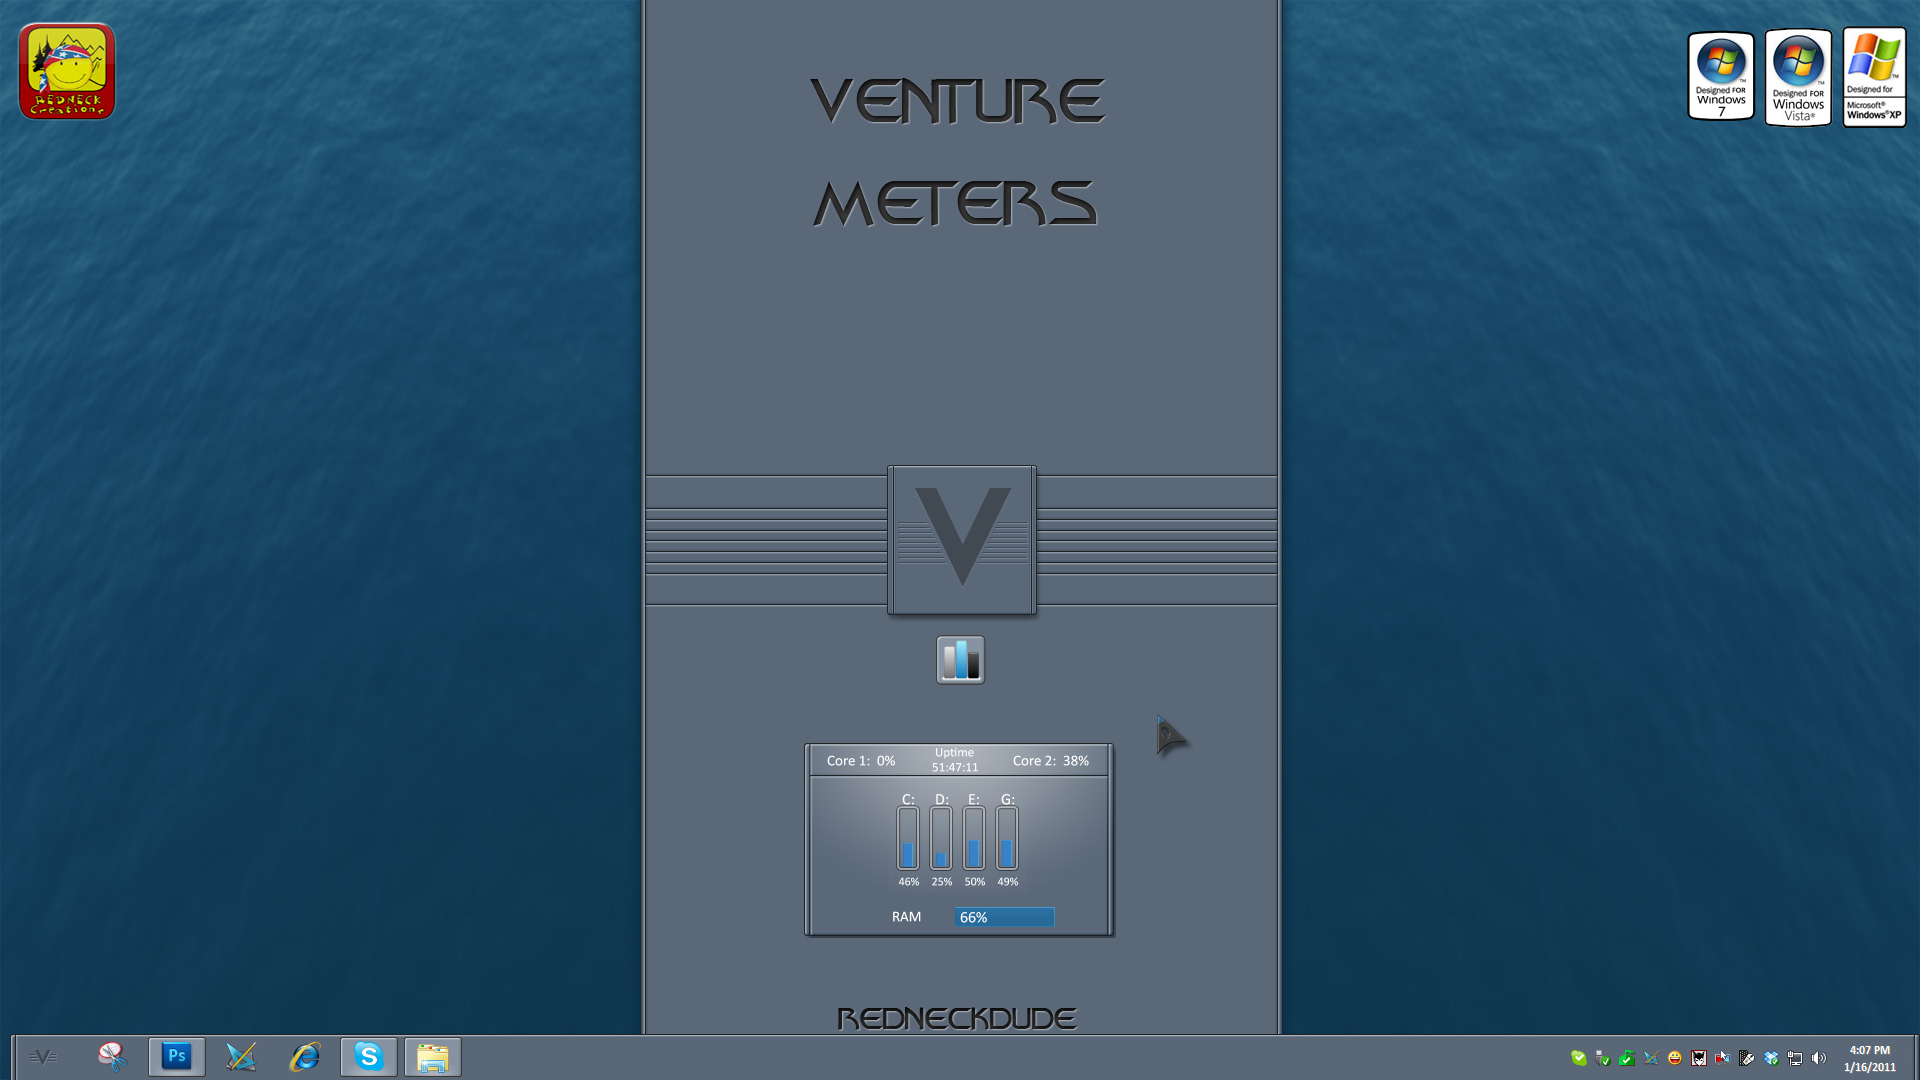 Venture Meters Gadget